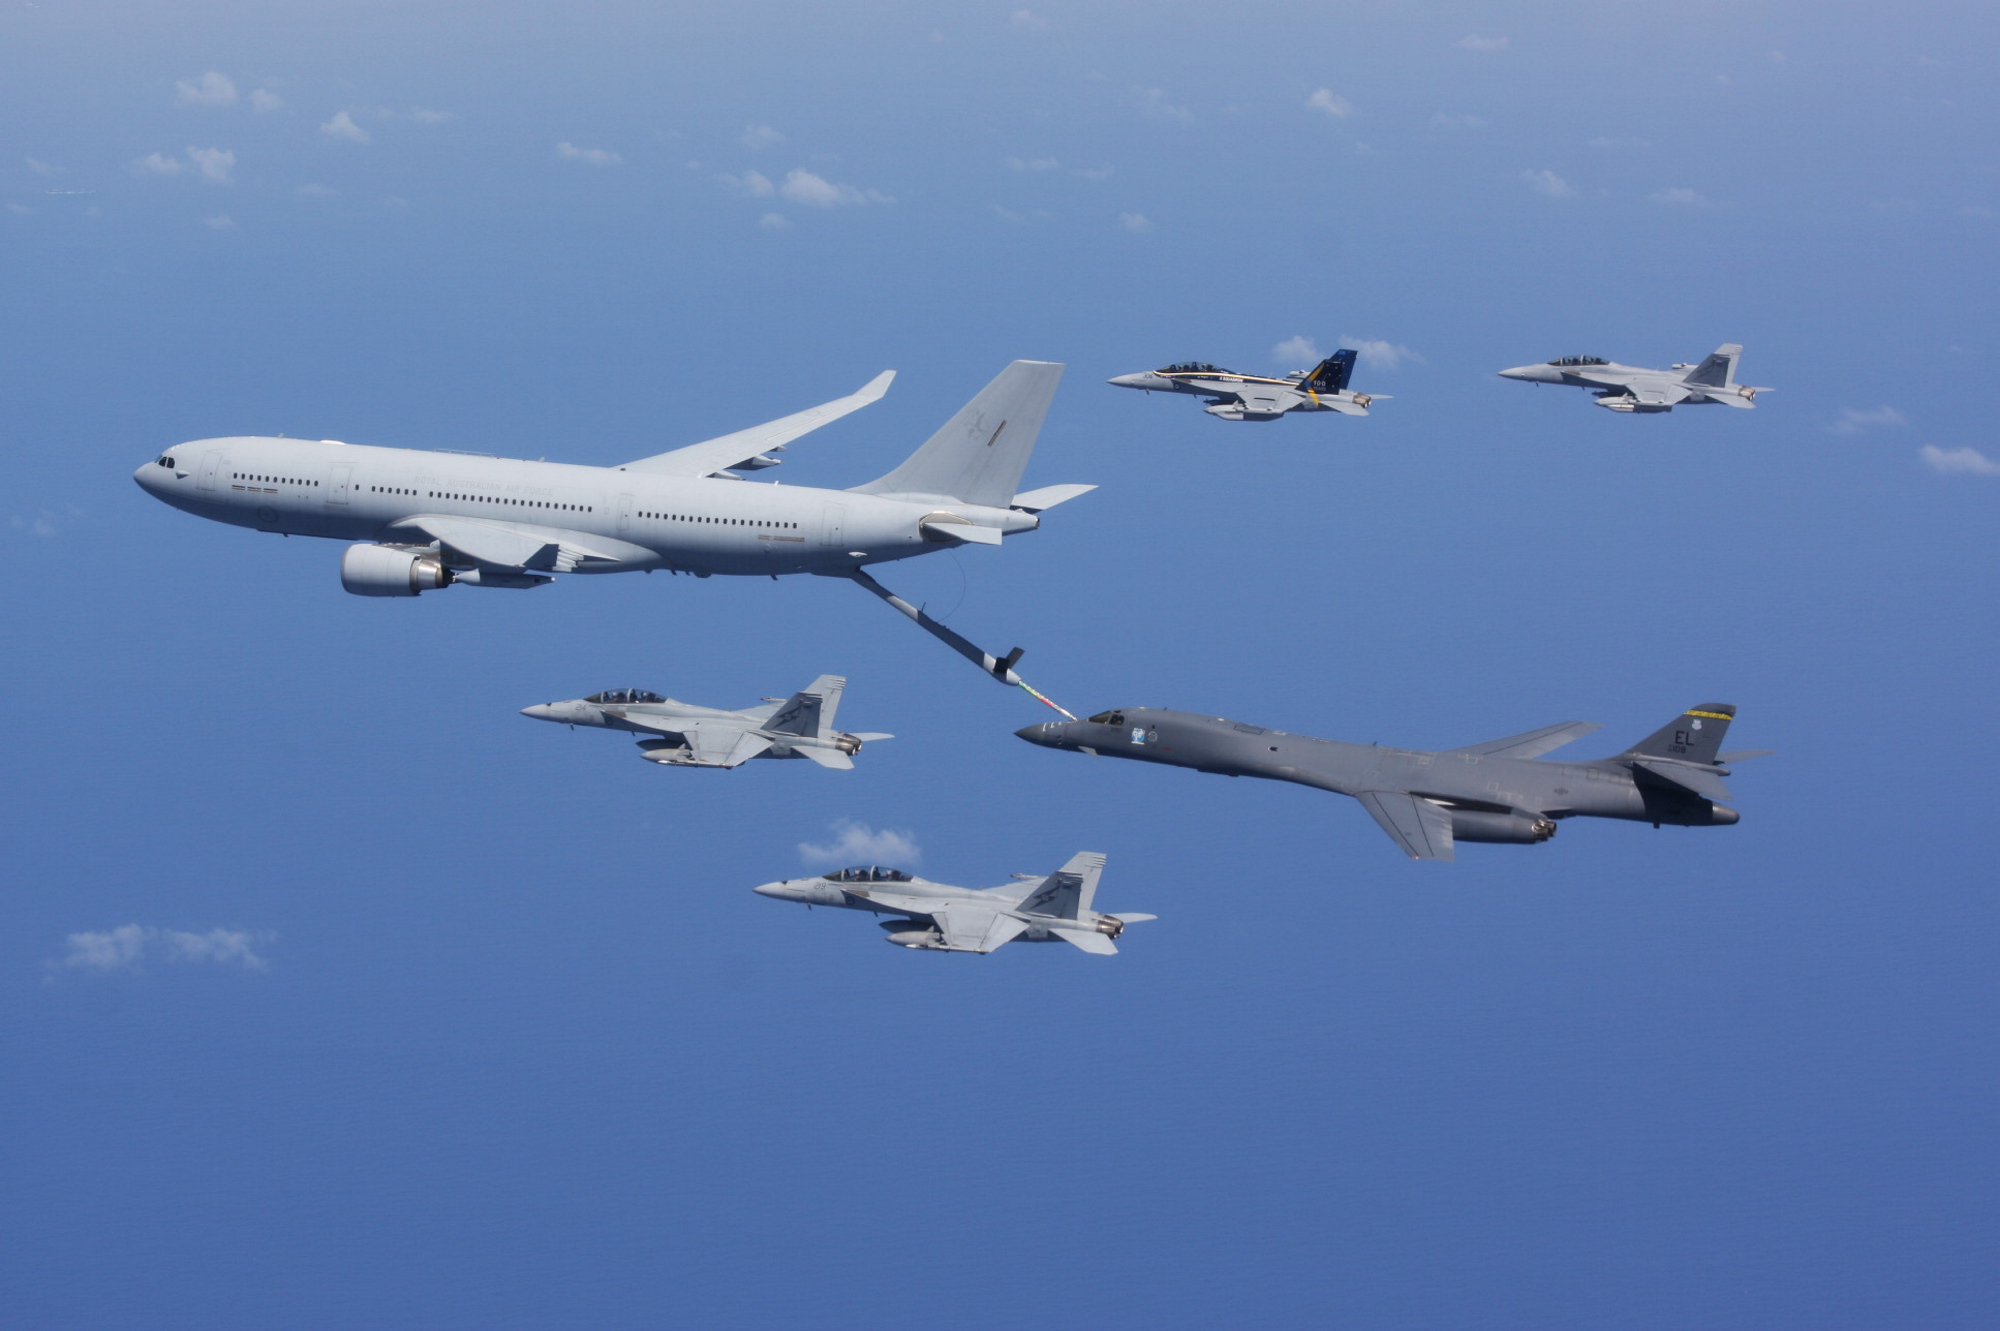 A Royal Australian Air Force KC-30A refuels a U.S. Air Force B-1B Lancer. (Commonwealth of Australia)